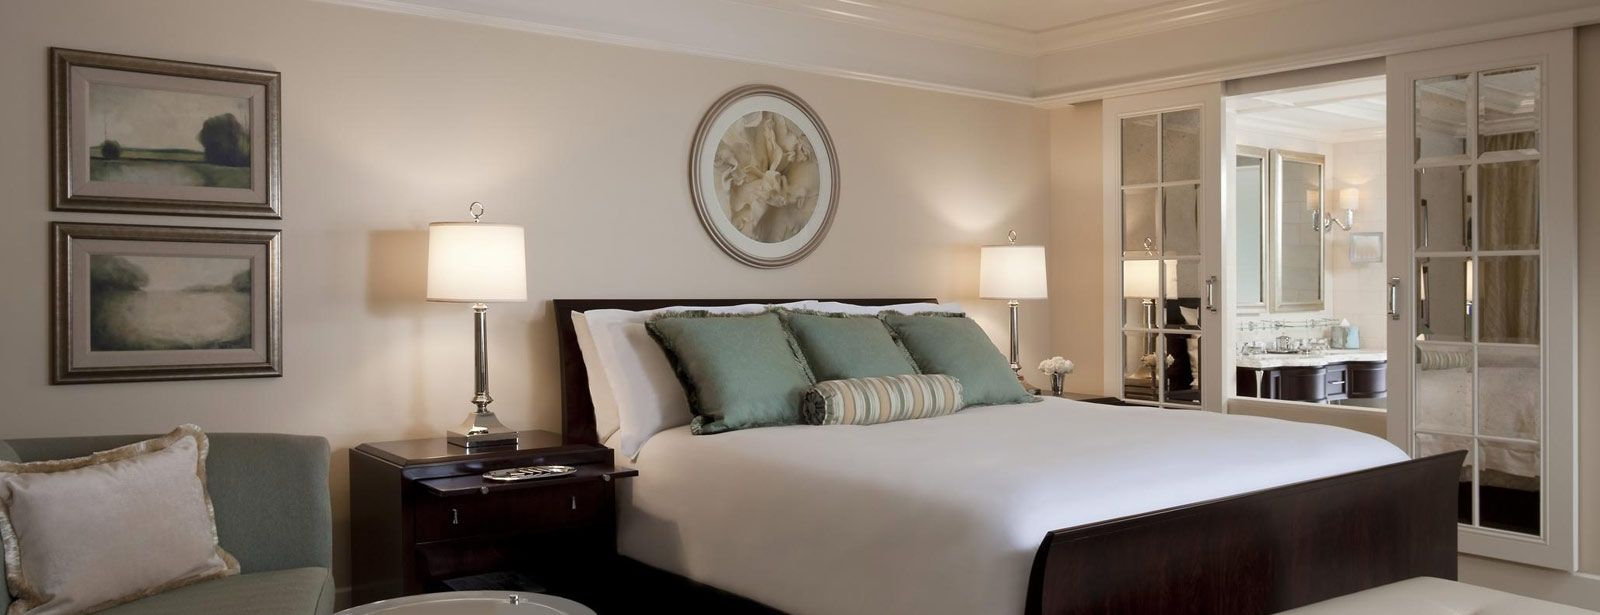 Deluxe Room | The St. Regis Atlanta